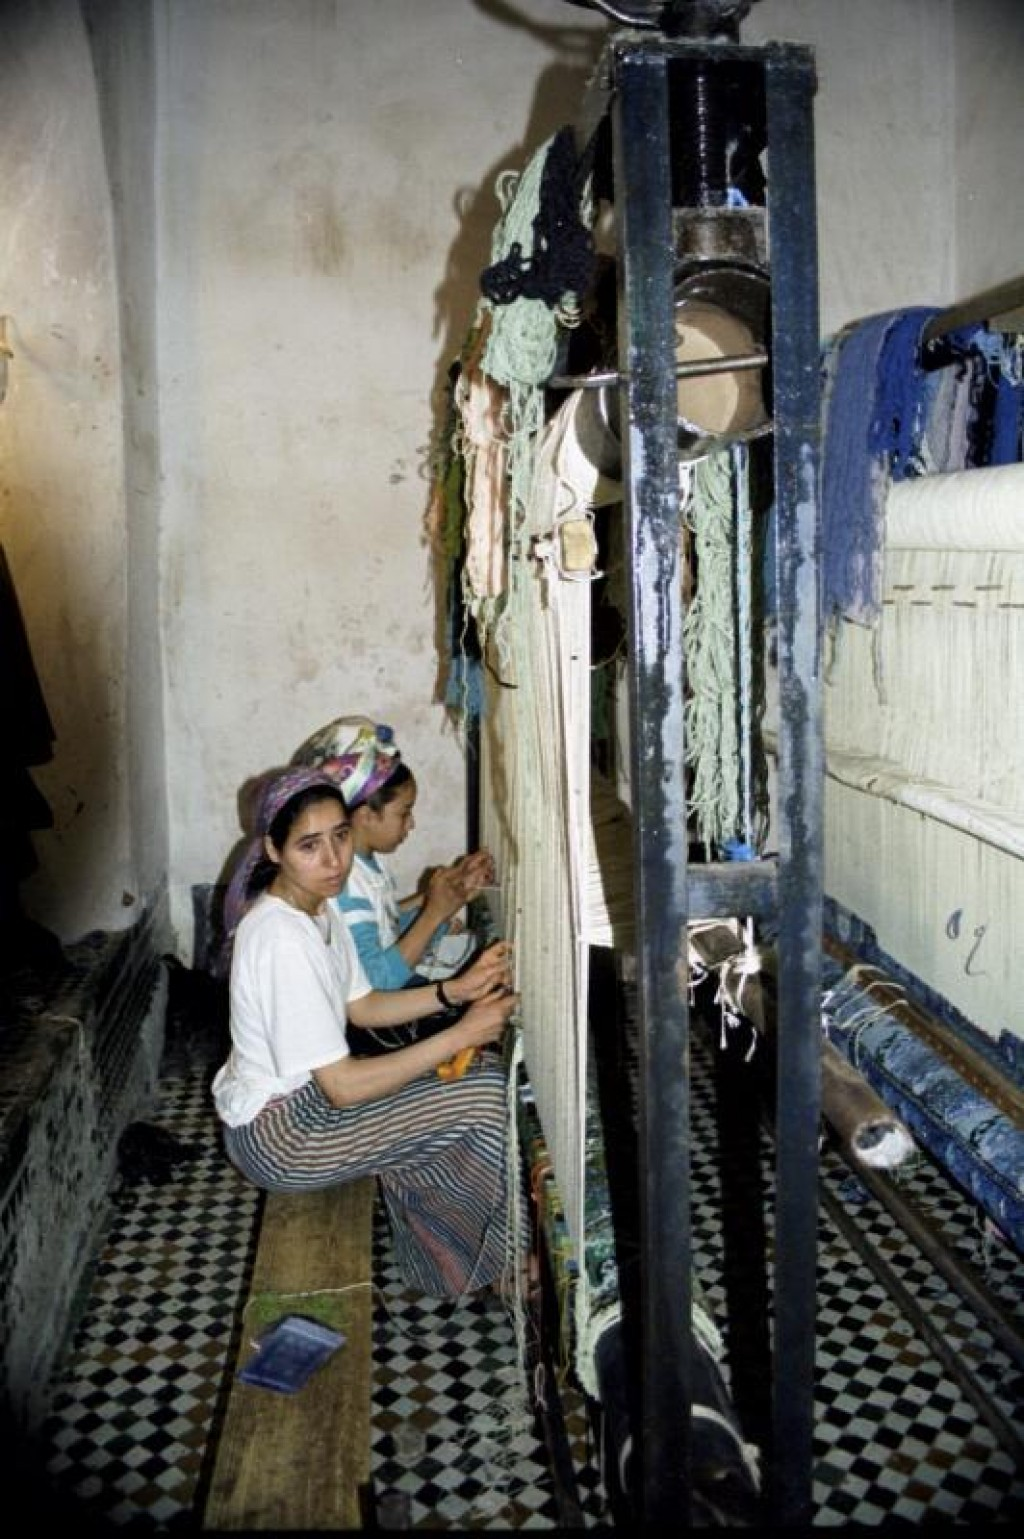 And of course, some under-aged carpet weavers to finish off the slideshow!